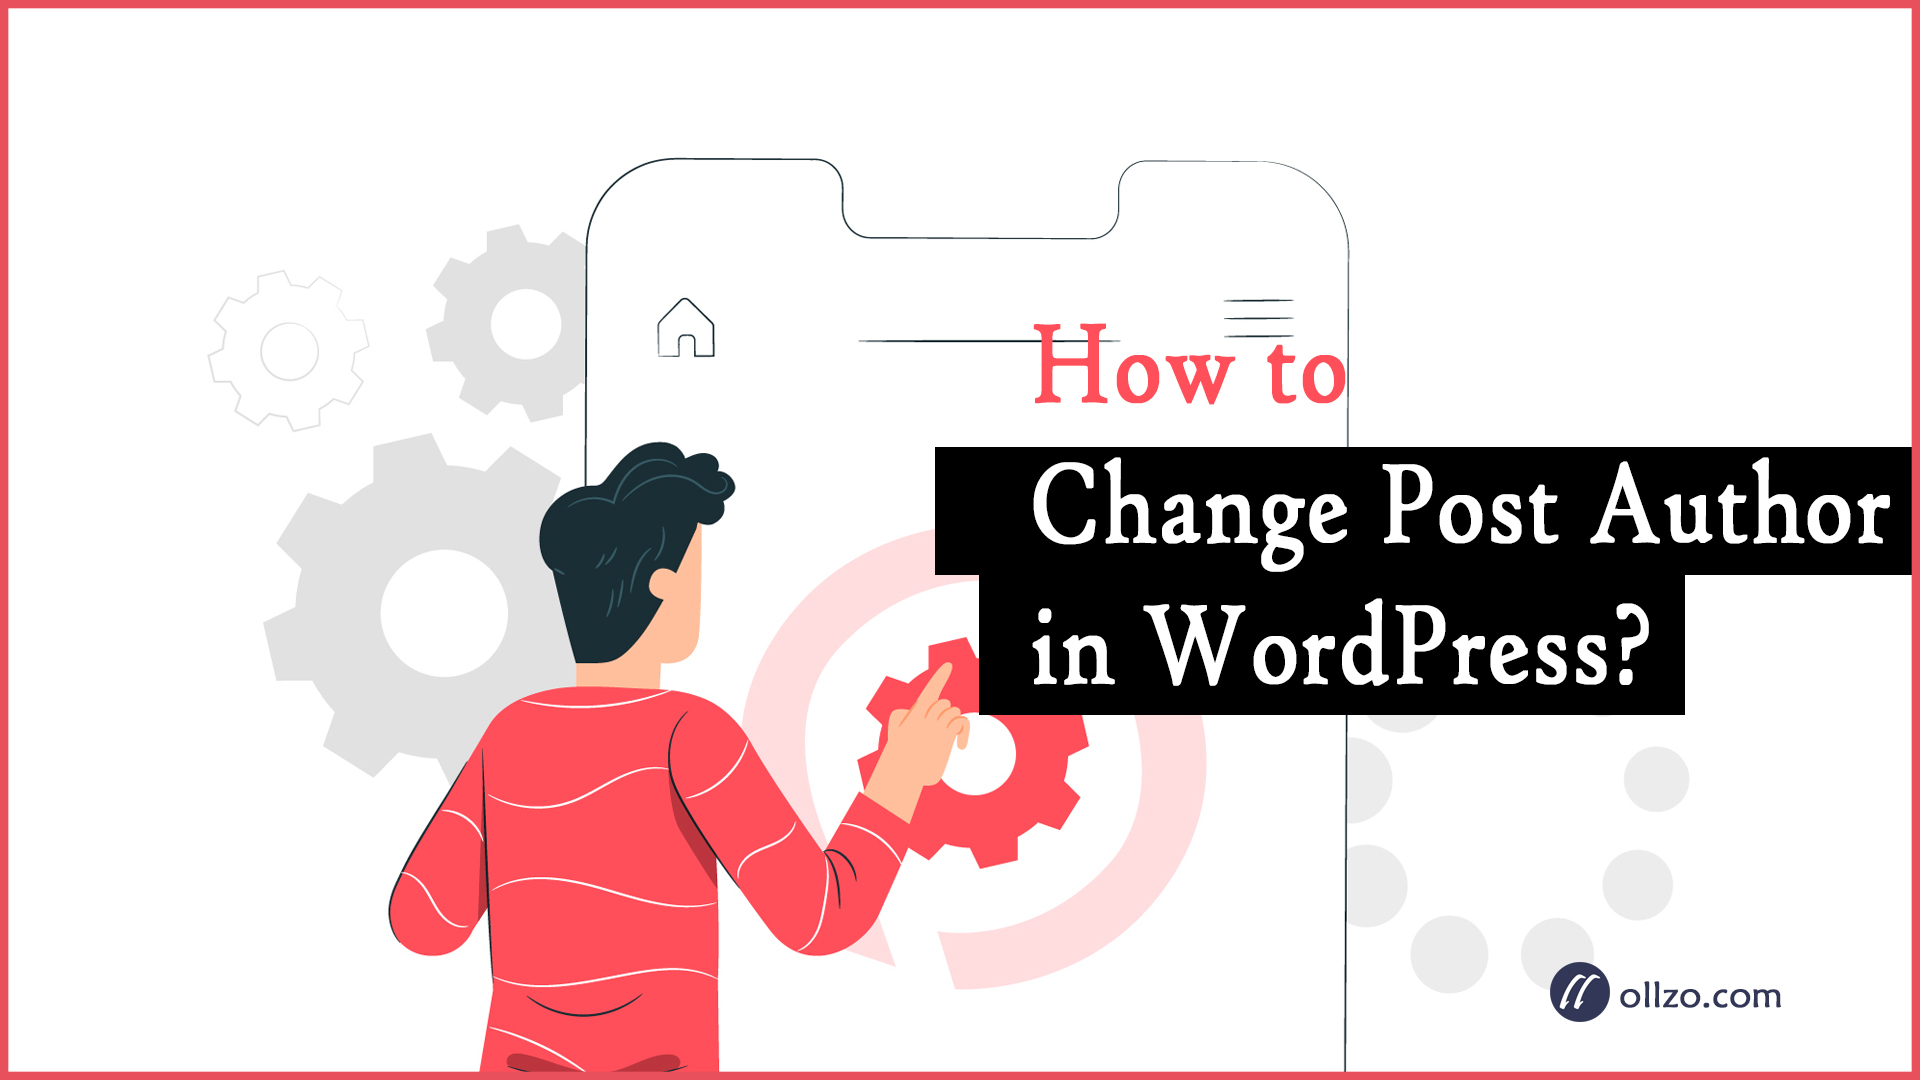 How to change post author in WordPress?